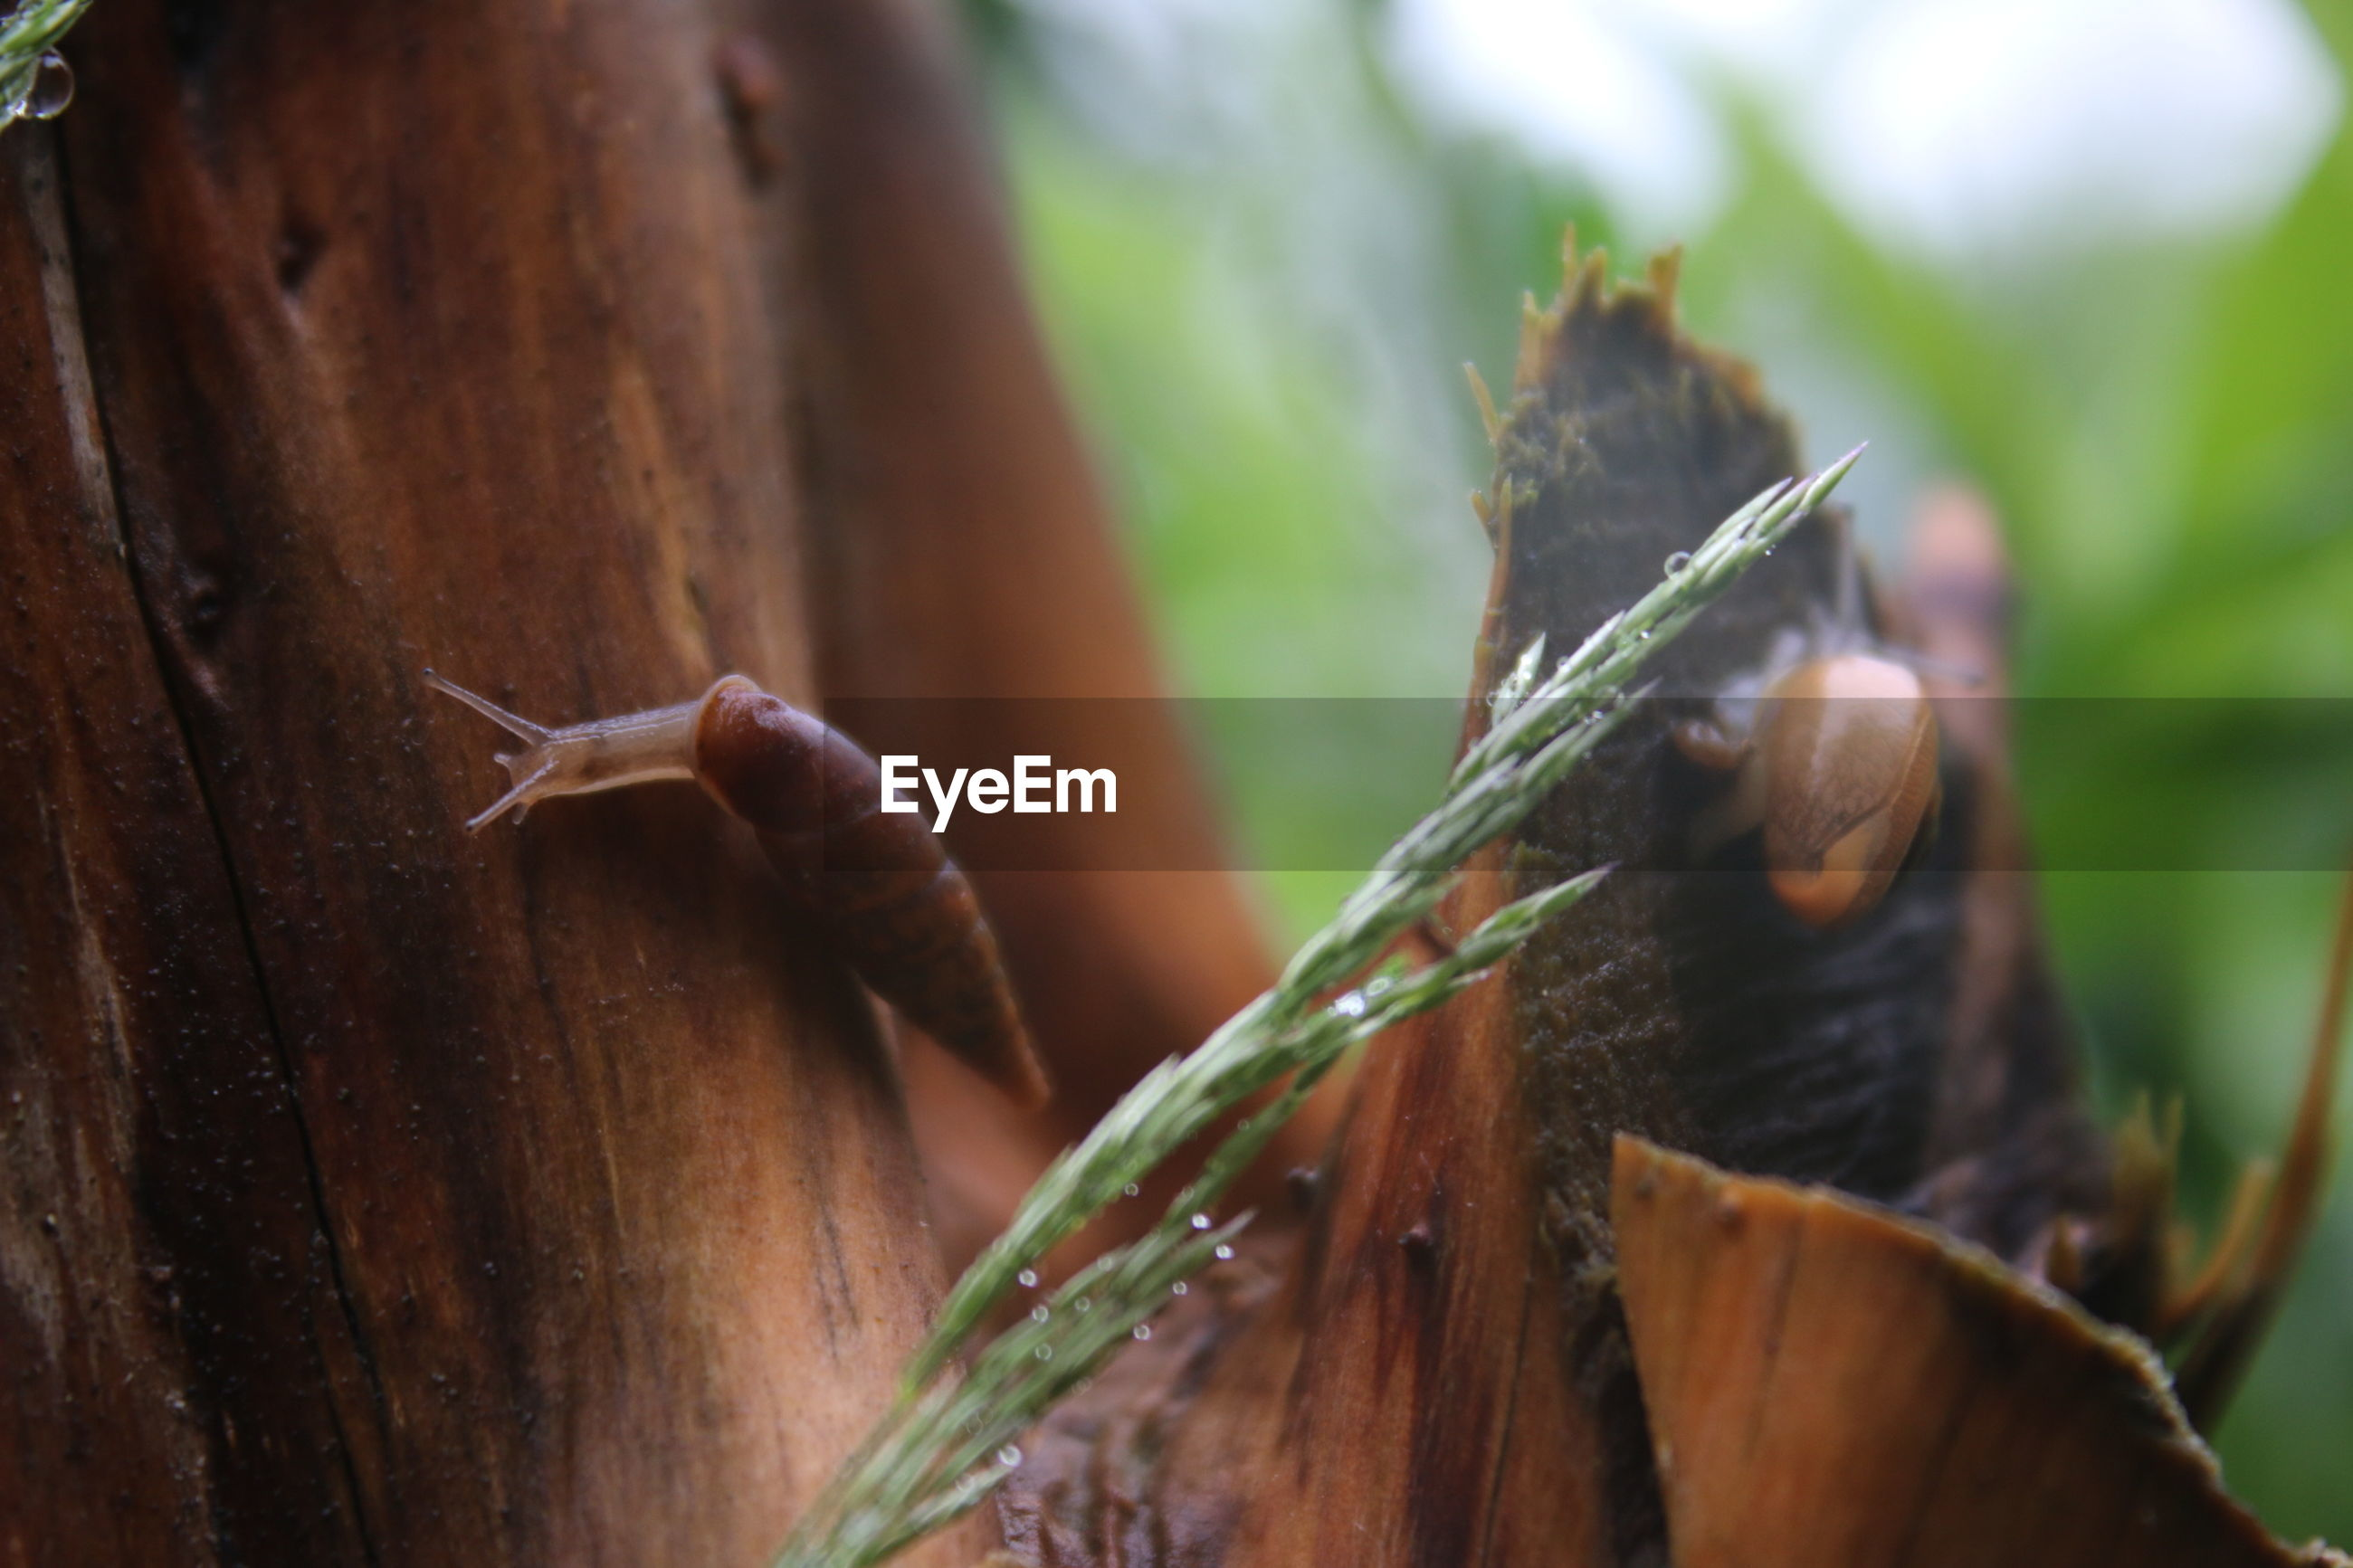 Close-up of snails crawling on bark